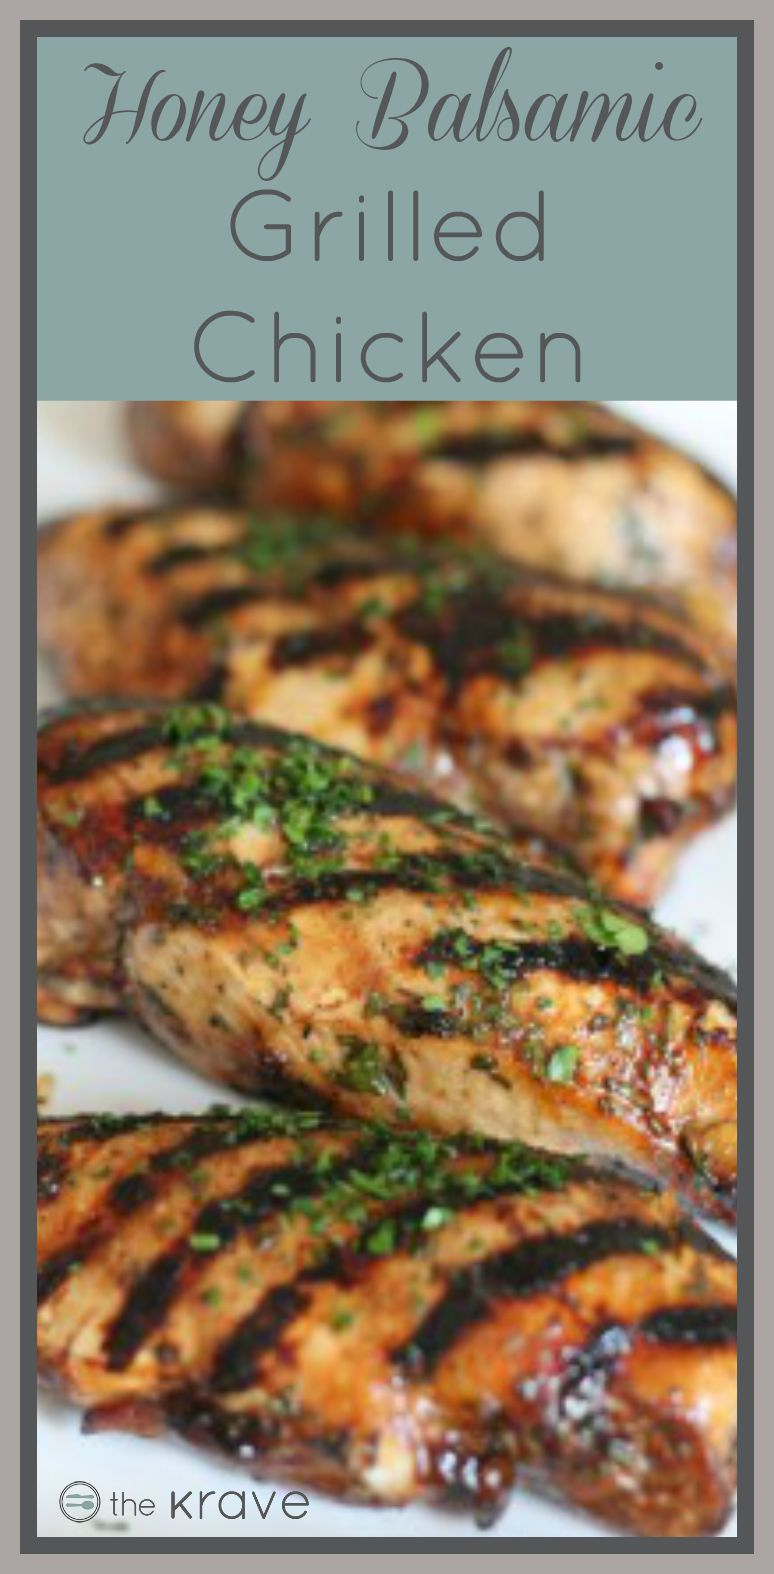 honeybalsamic-grilled-chicken-thekrave